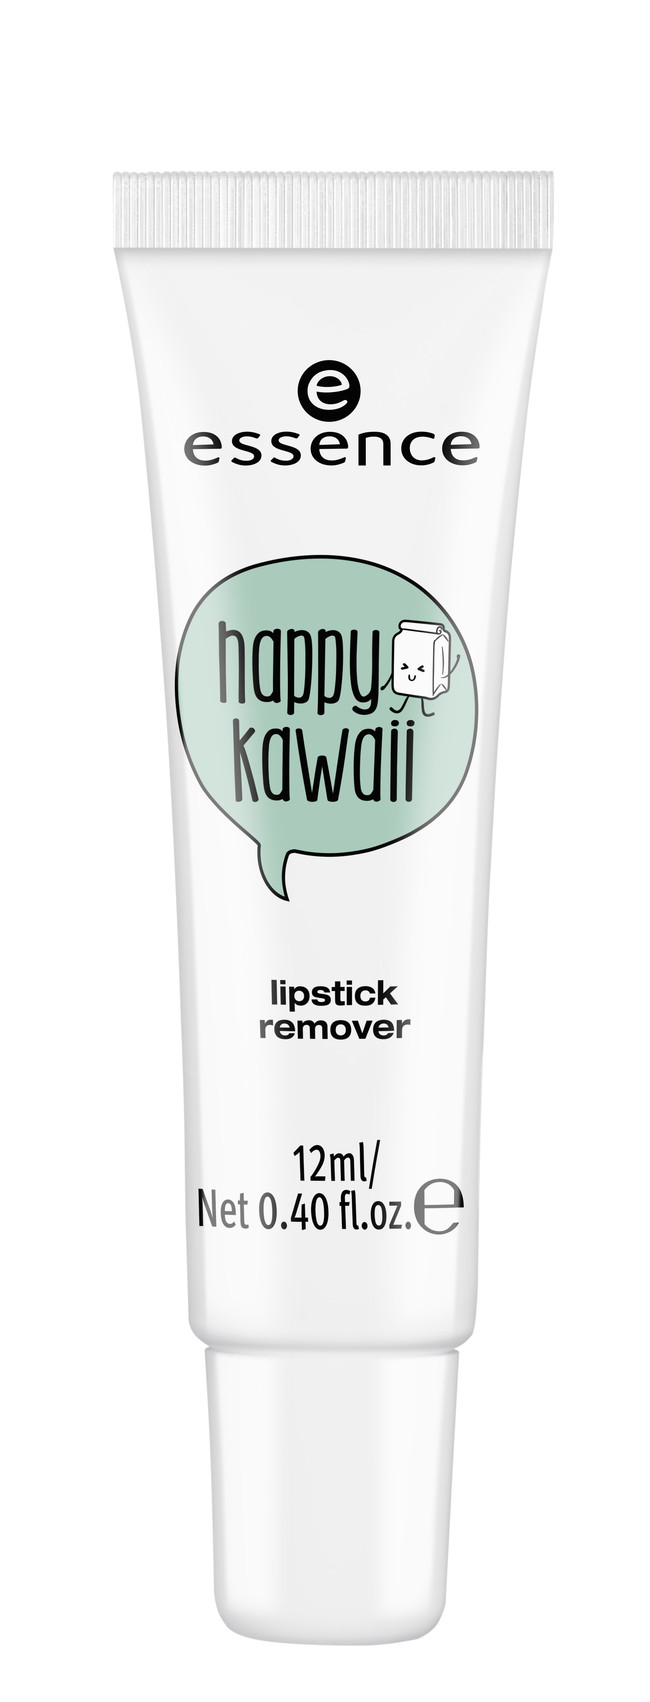 Ess Happy Kawaii Lipstick Remover Front View